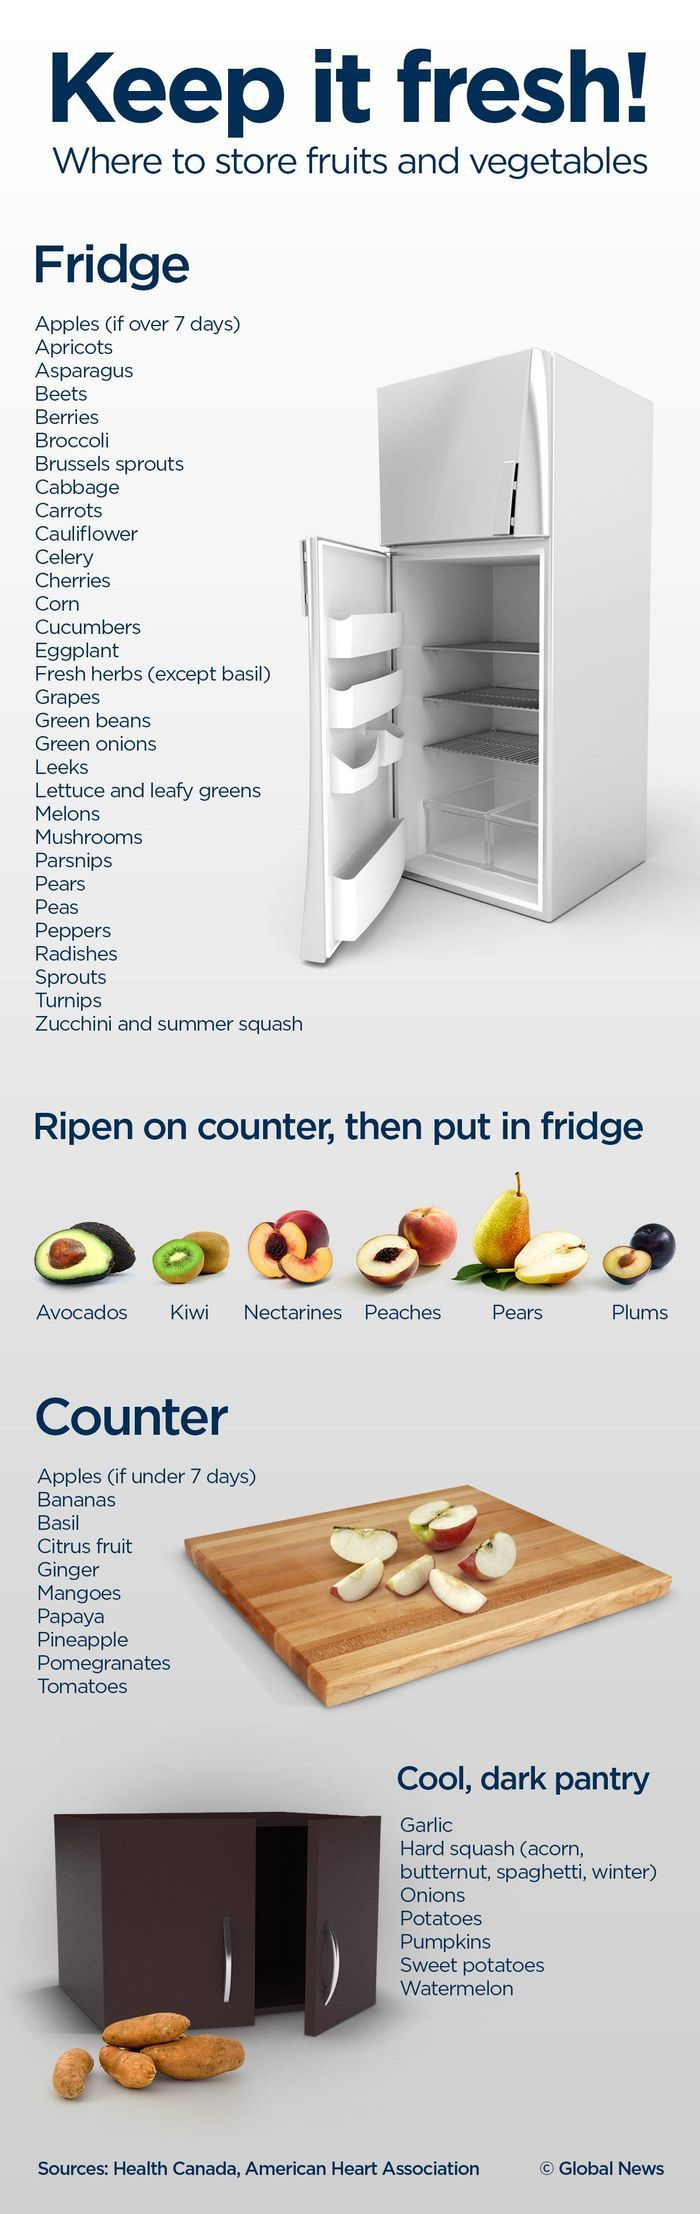 How To Store Food to Keep It Fresh & Healthy | Fridge vs counter: How to store fresh food properly